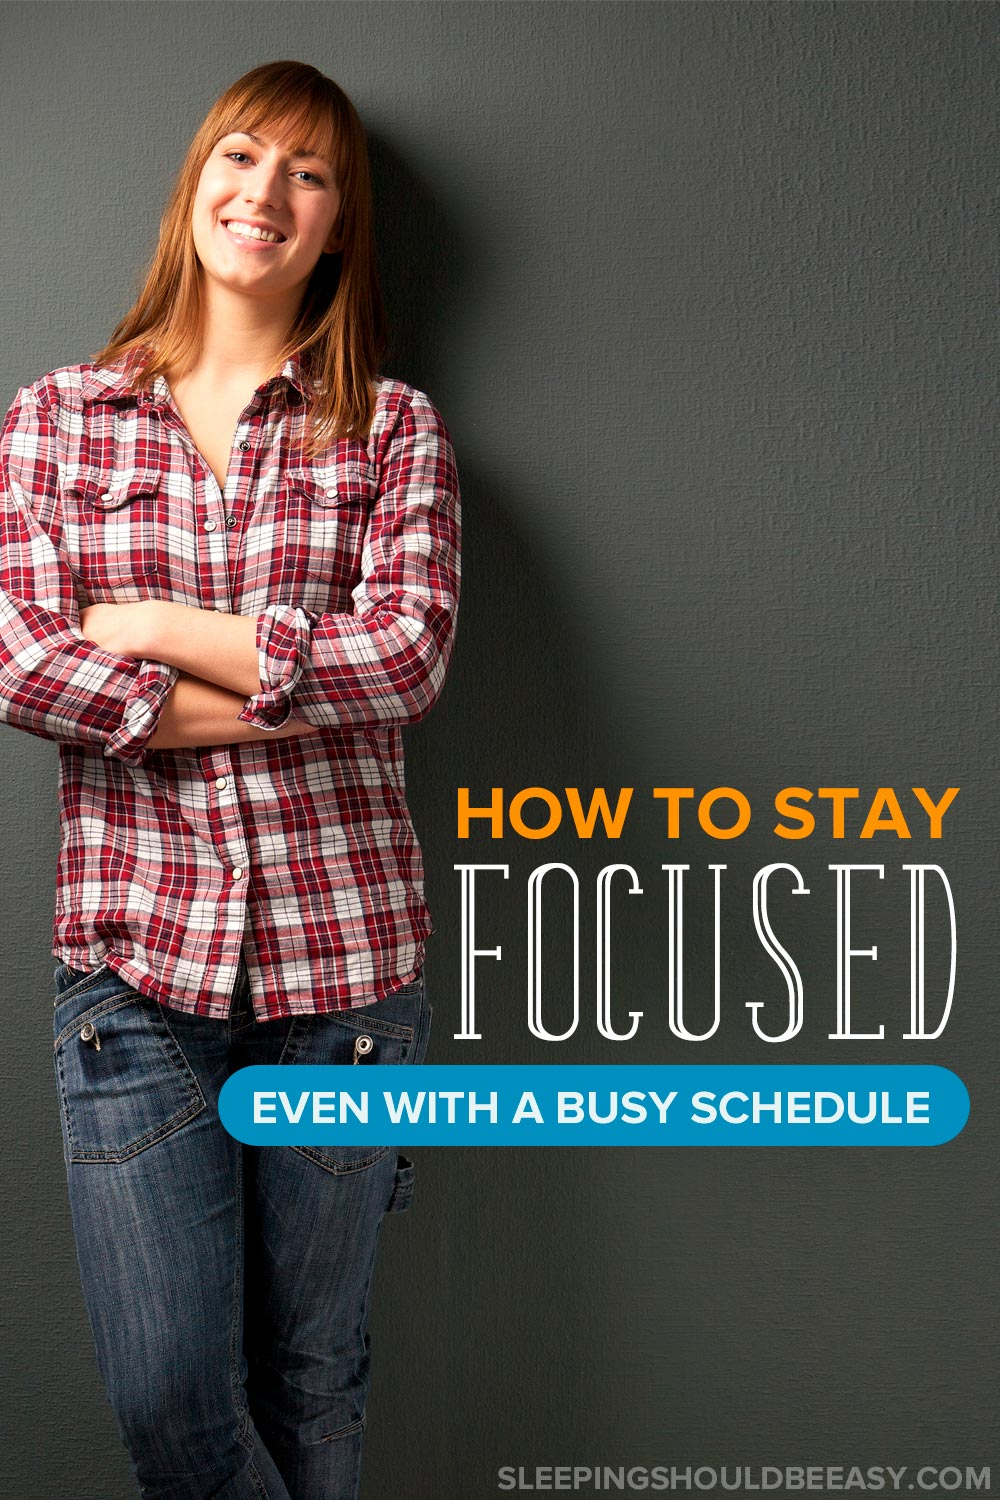 Moms can find it difficult to stay focused, especially with hectic schedules and tasks. Discover the 5 tips on being focused, even on your busiest days!